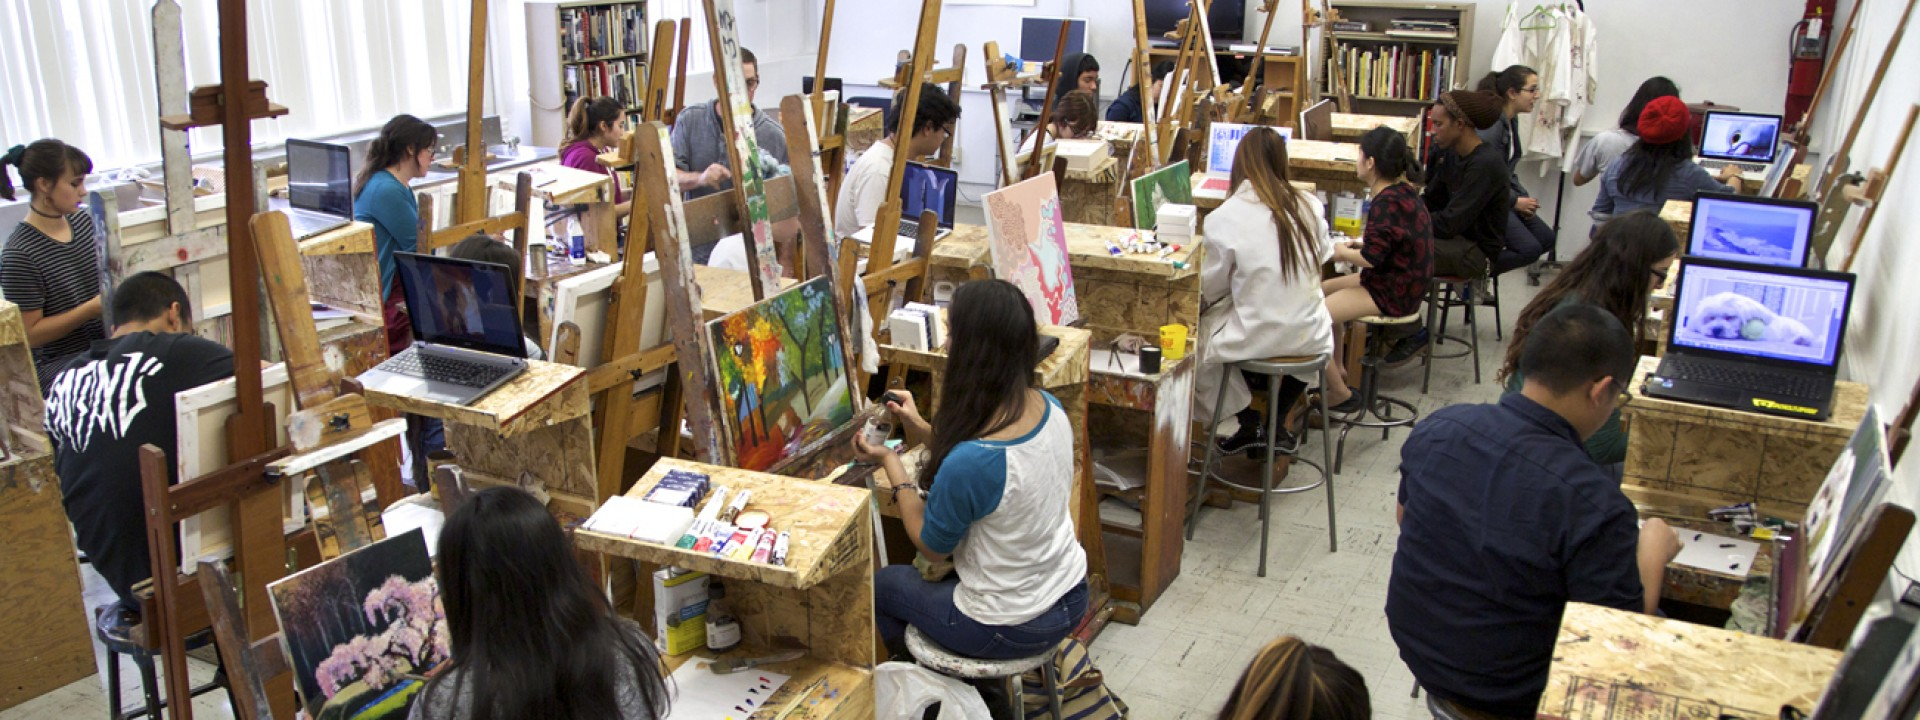 Image of students in a painting studio with easels, shot from above